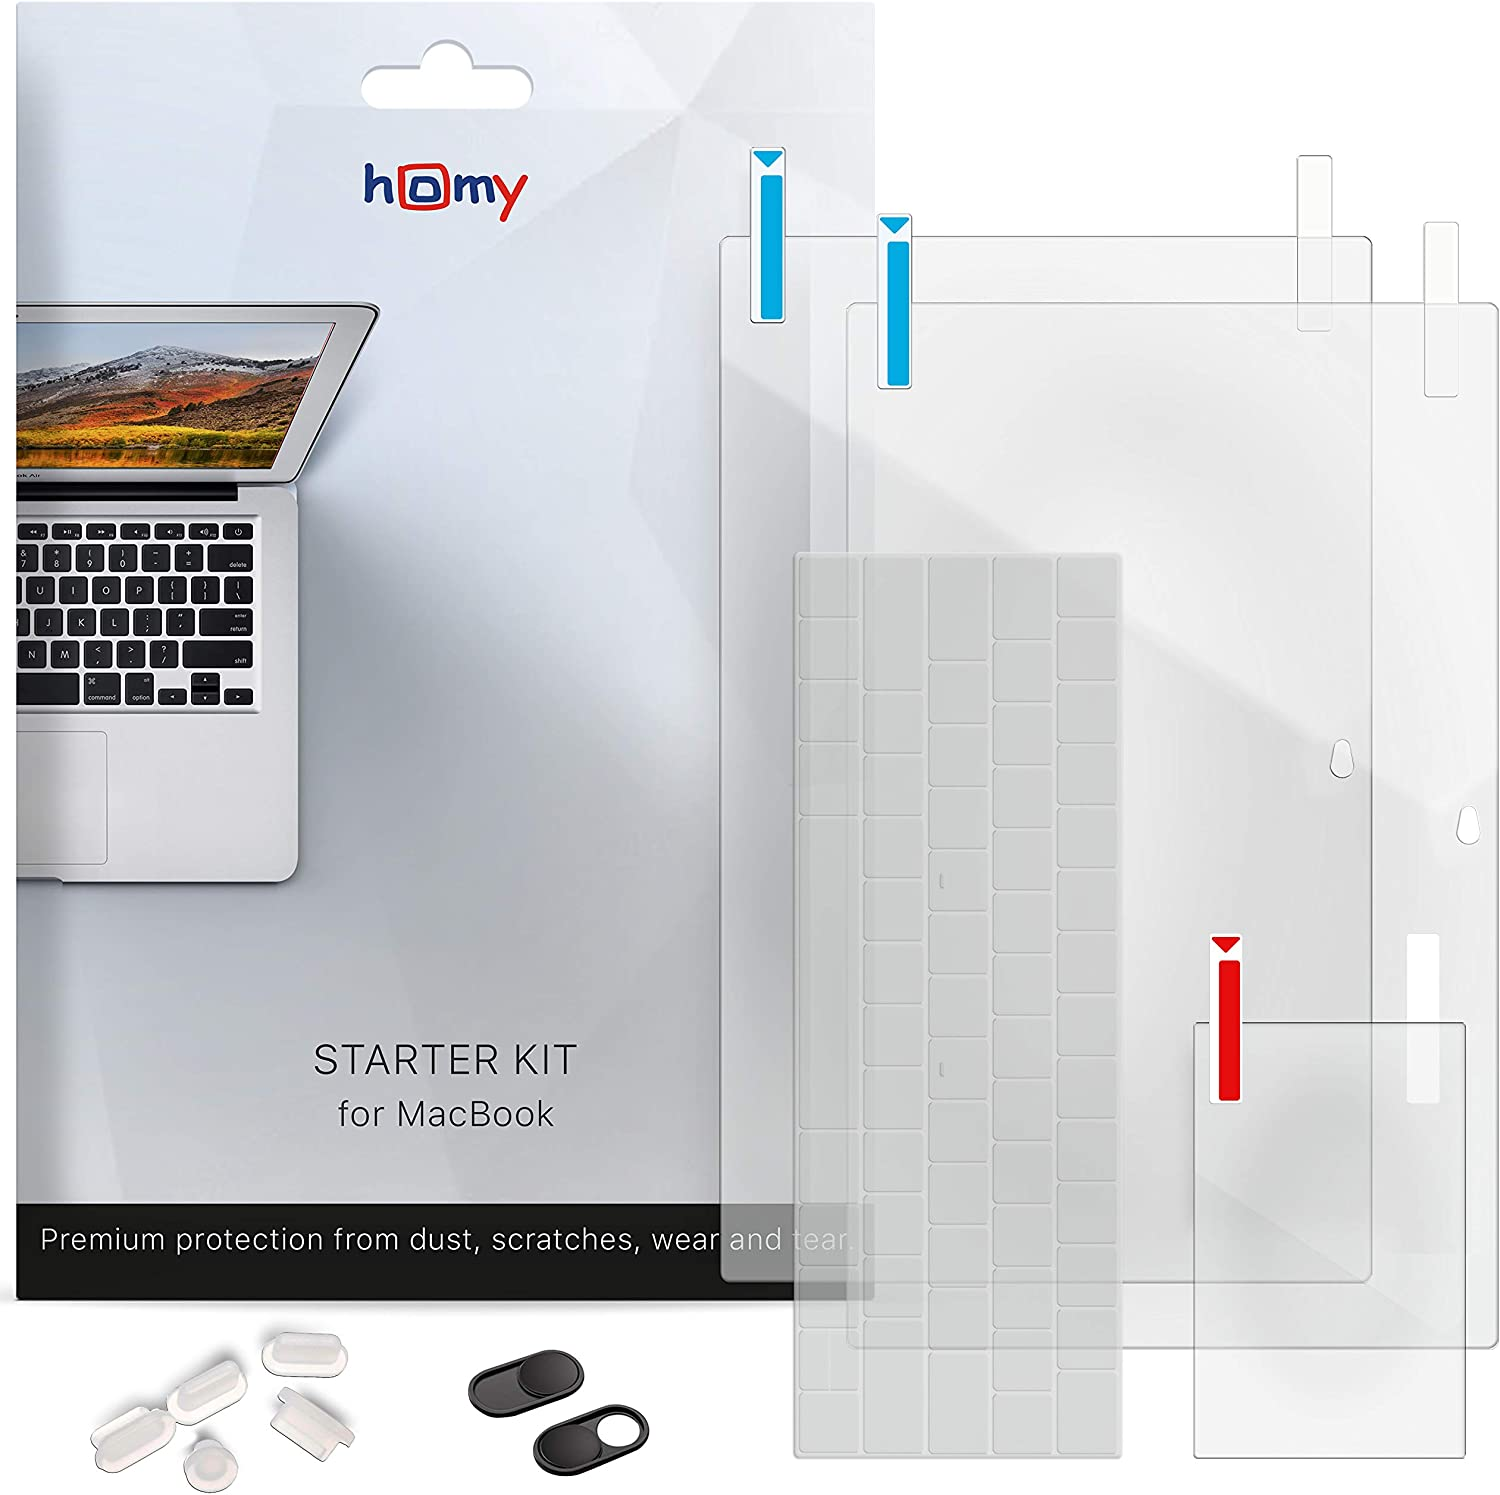 Homy Accessories for MacBook 12 inch Protection: 1x Matte & 1x Glare Screen Protector, Keyboard Cover Ultra-Thin TPU, 2X Web Camera Cover Slide, 5X Dust Plug, Trackpad Cover for A1534 Retina.